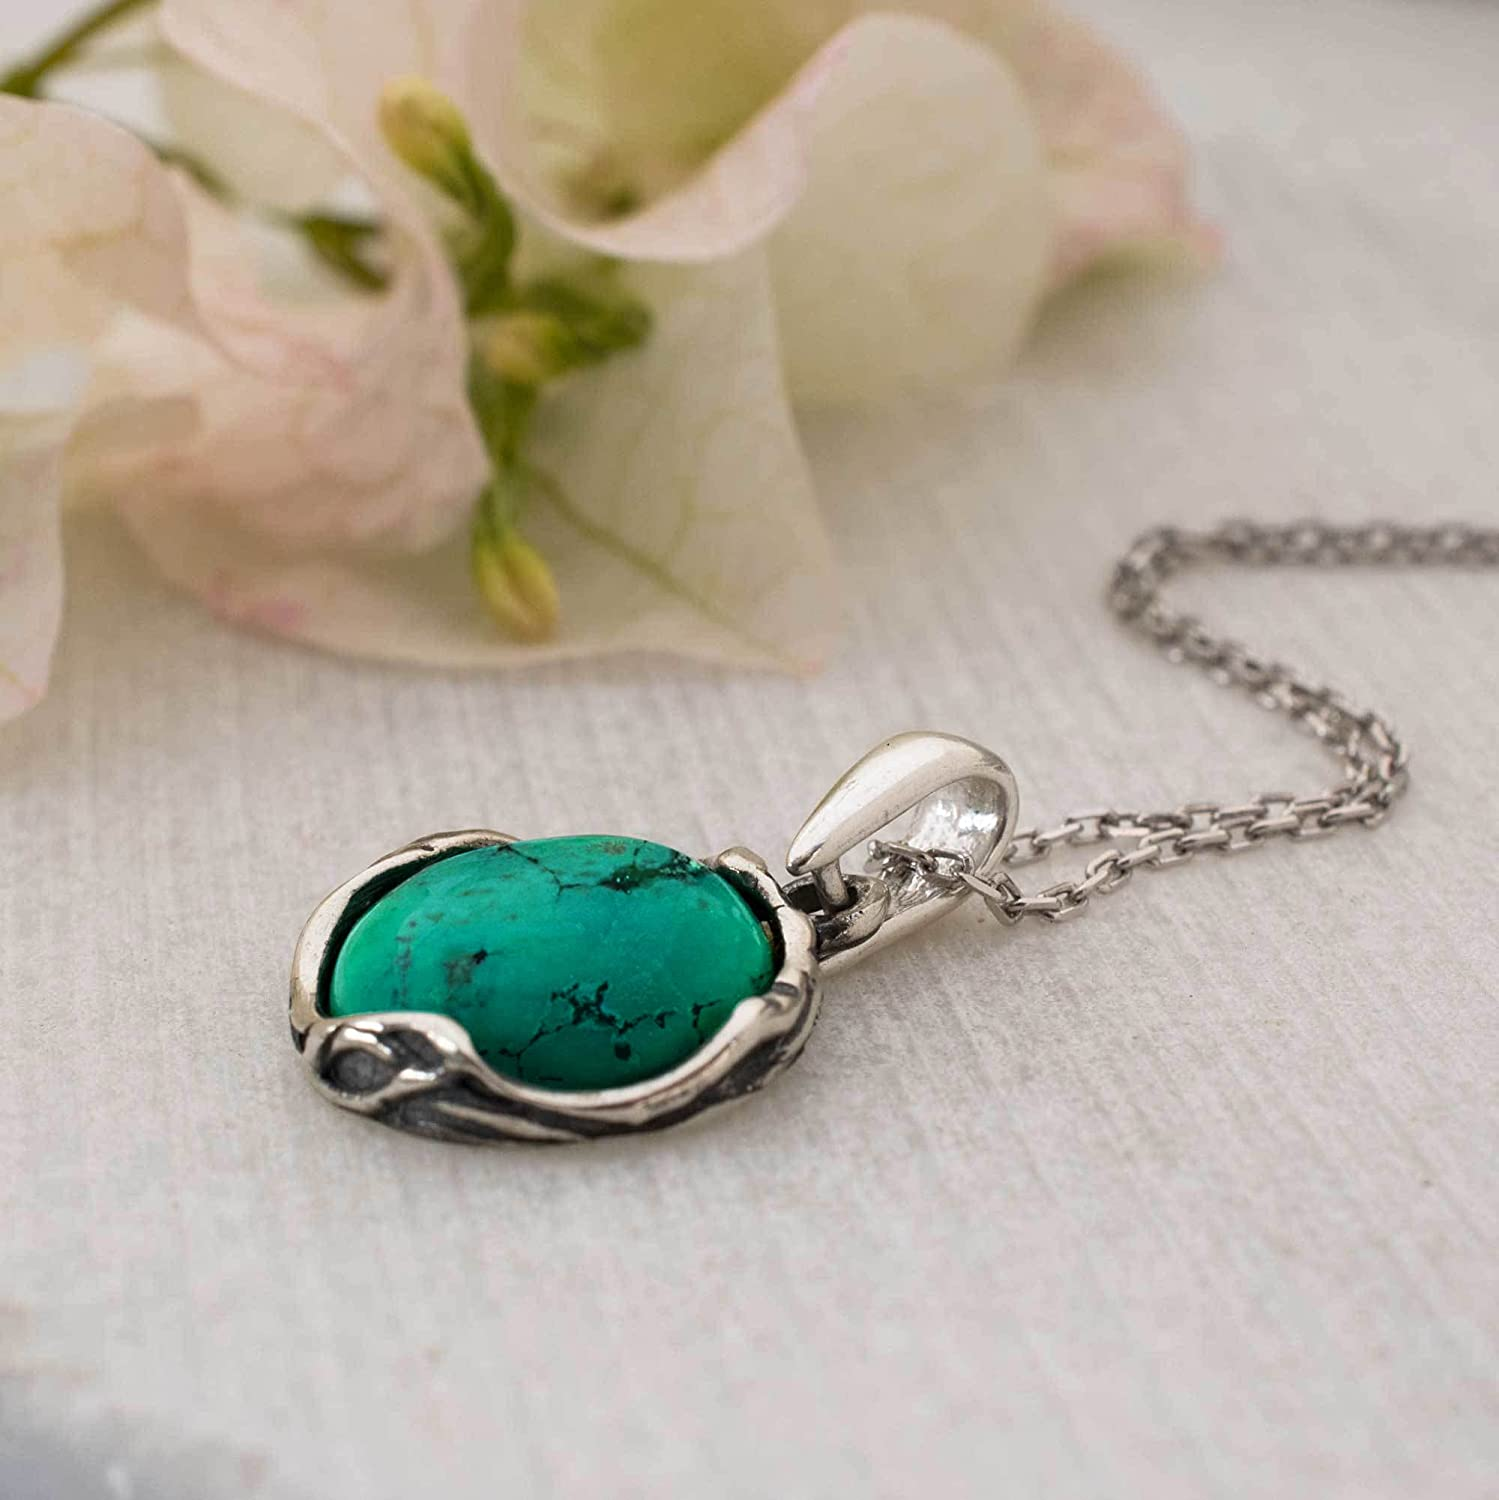 Turquoise Jewelry Necklace For Girls Turquoise Desinged Pendant 925 Sterling Silver Turquoise Necklace December Birthstone Necklace